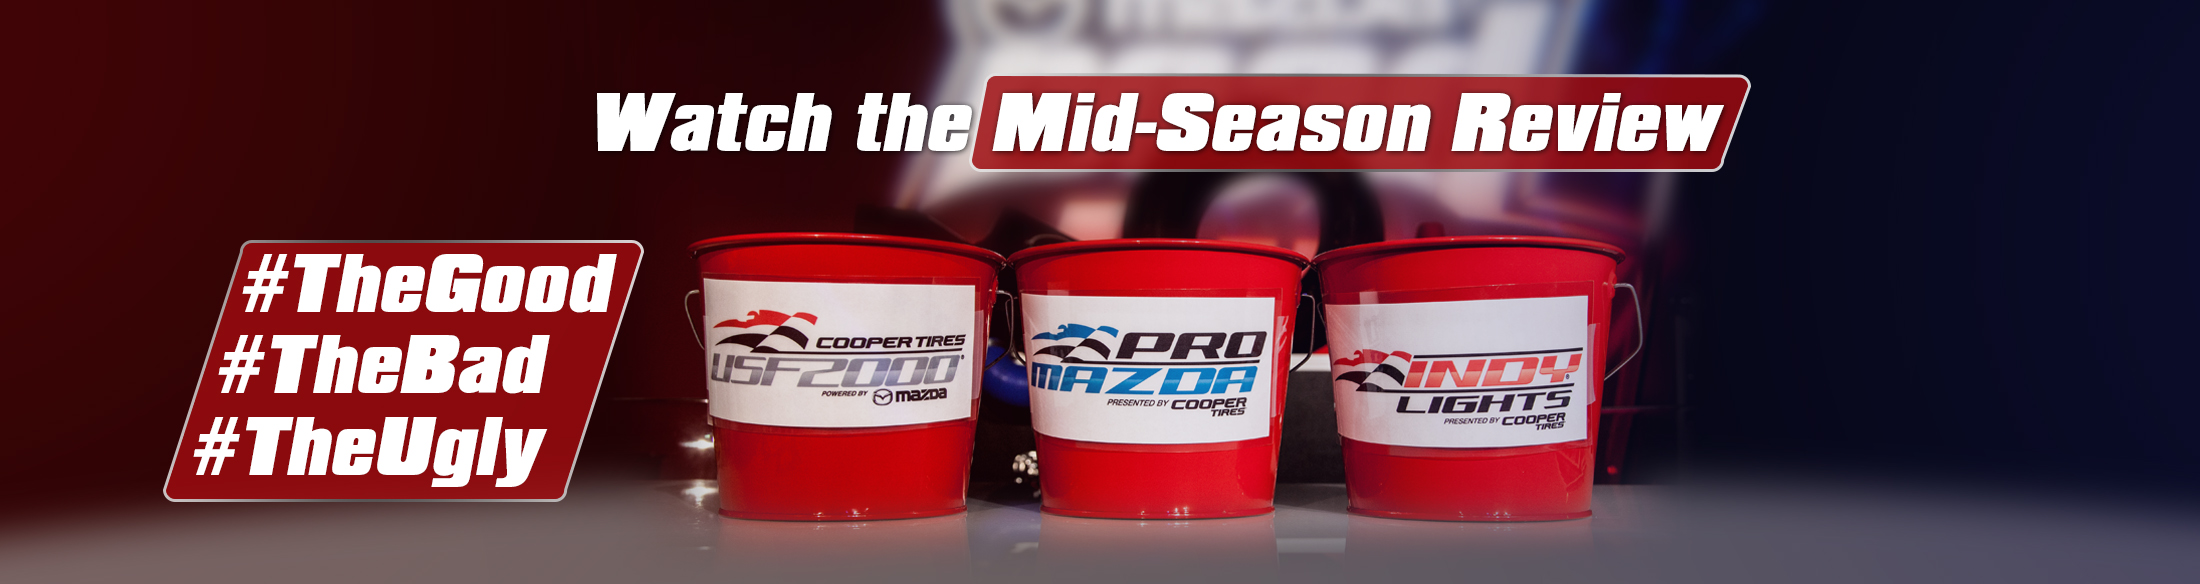 Road to Indy TV Mid-season Review